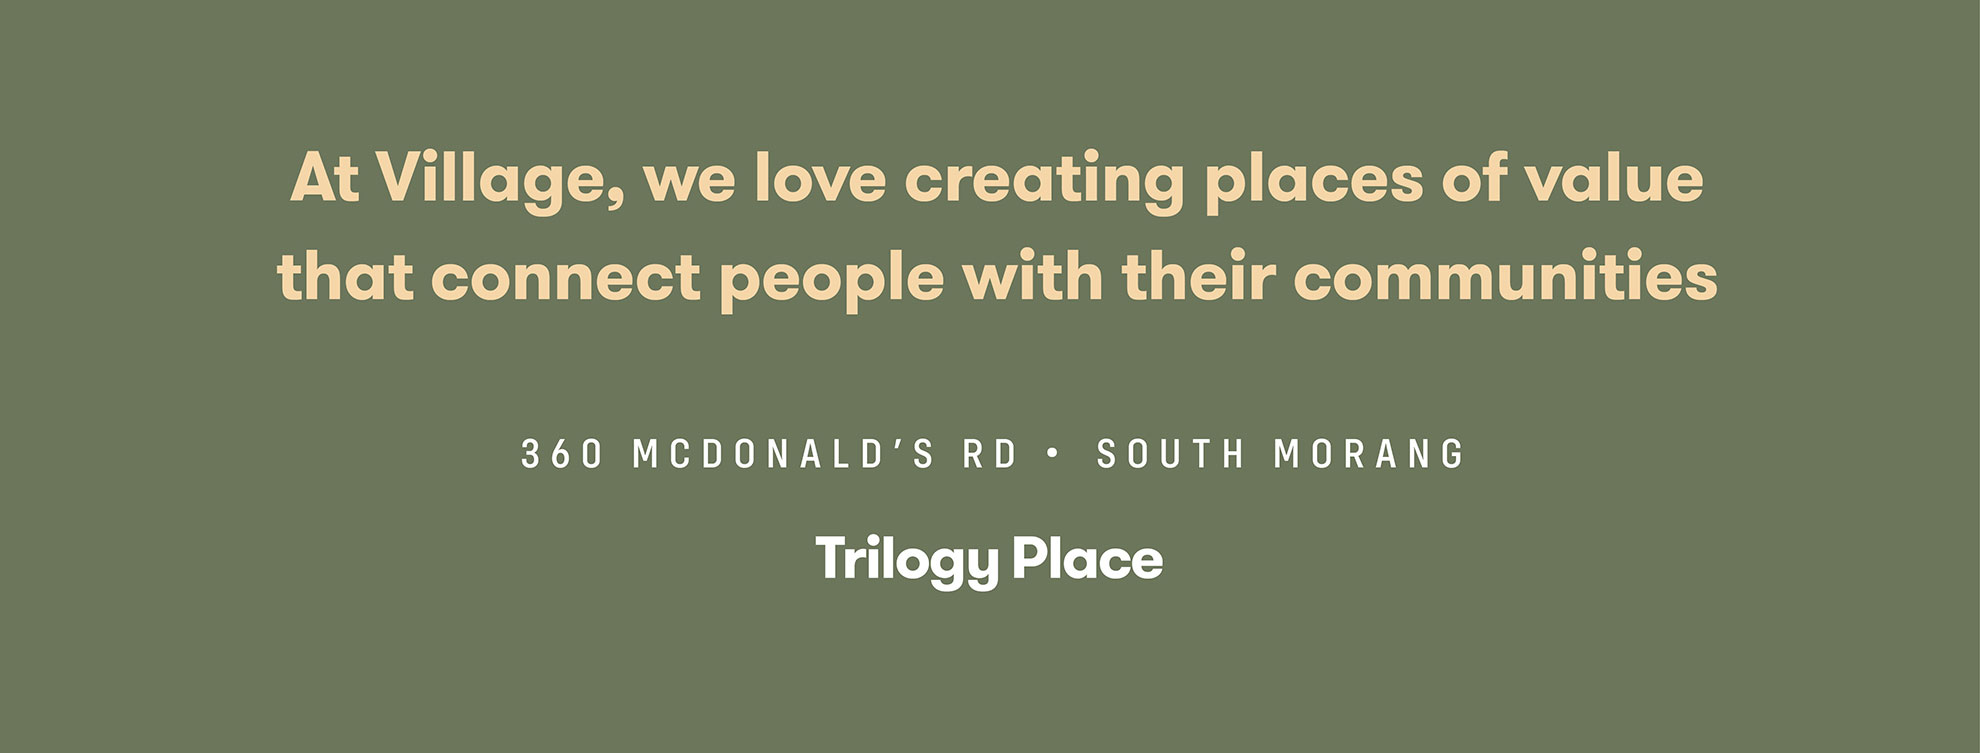 Trilogy Place